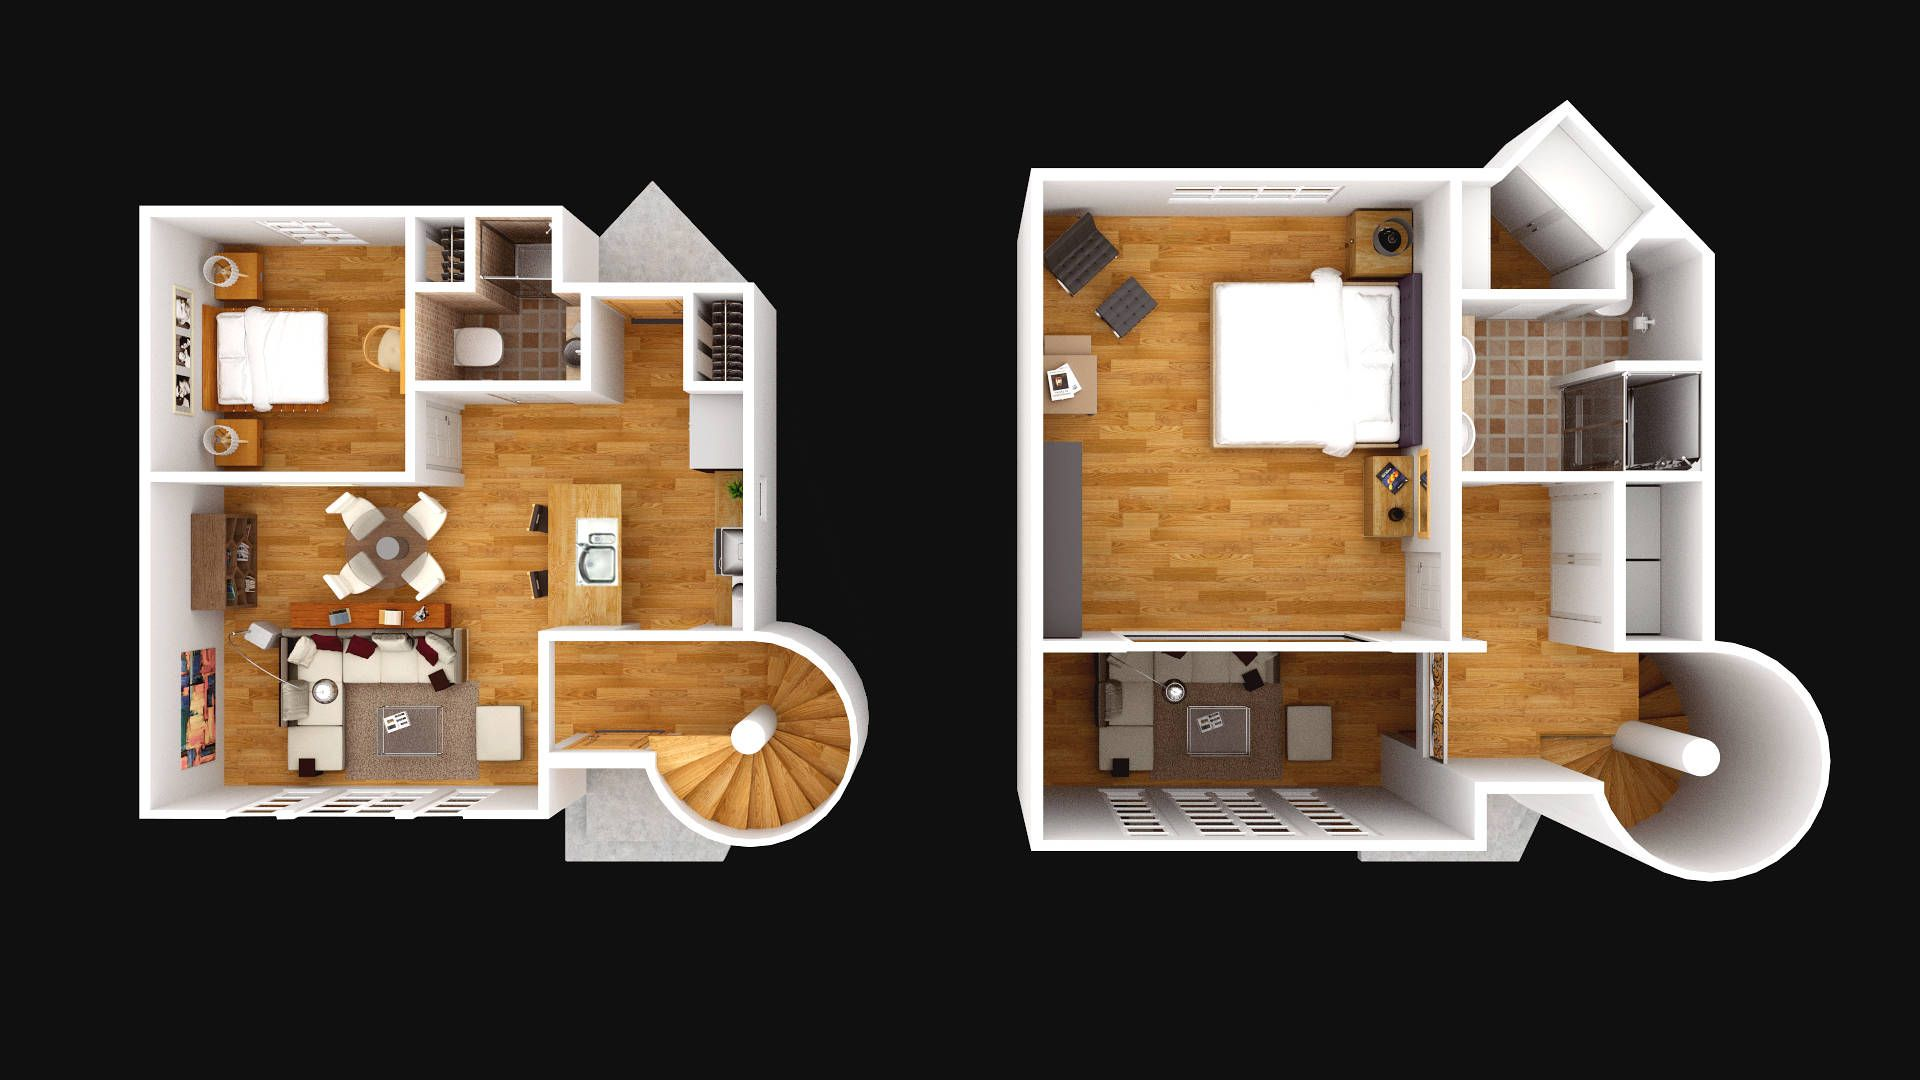 Create Your Own Home Then Build It See The Details Here Start Off With The Basics Of Home Building 2 Storey House Design House Plans House Design